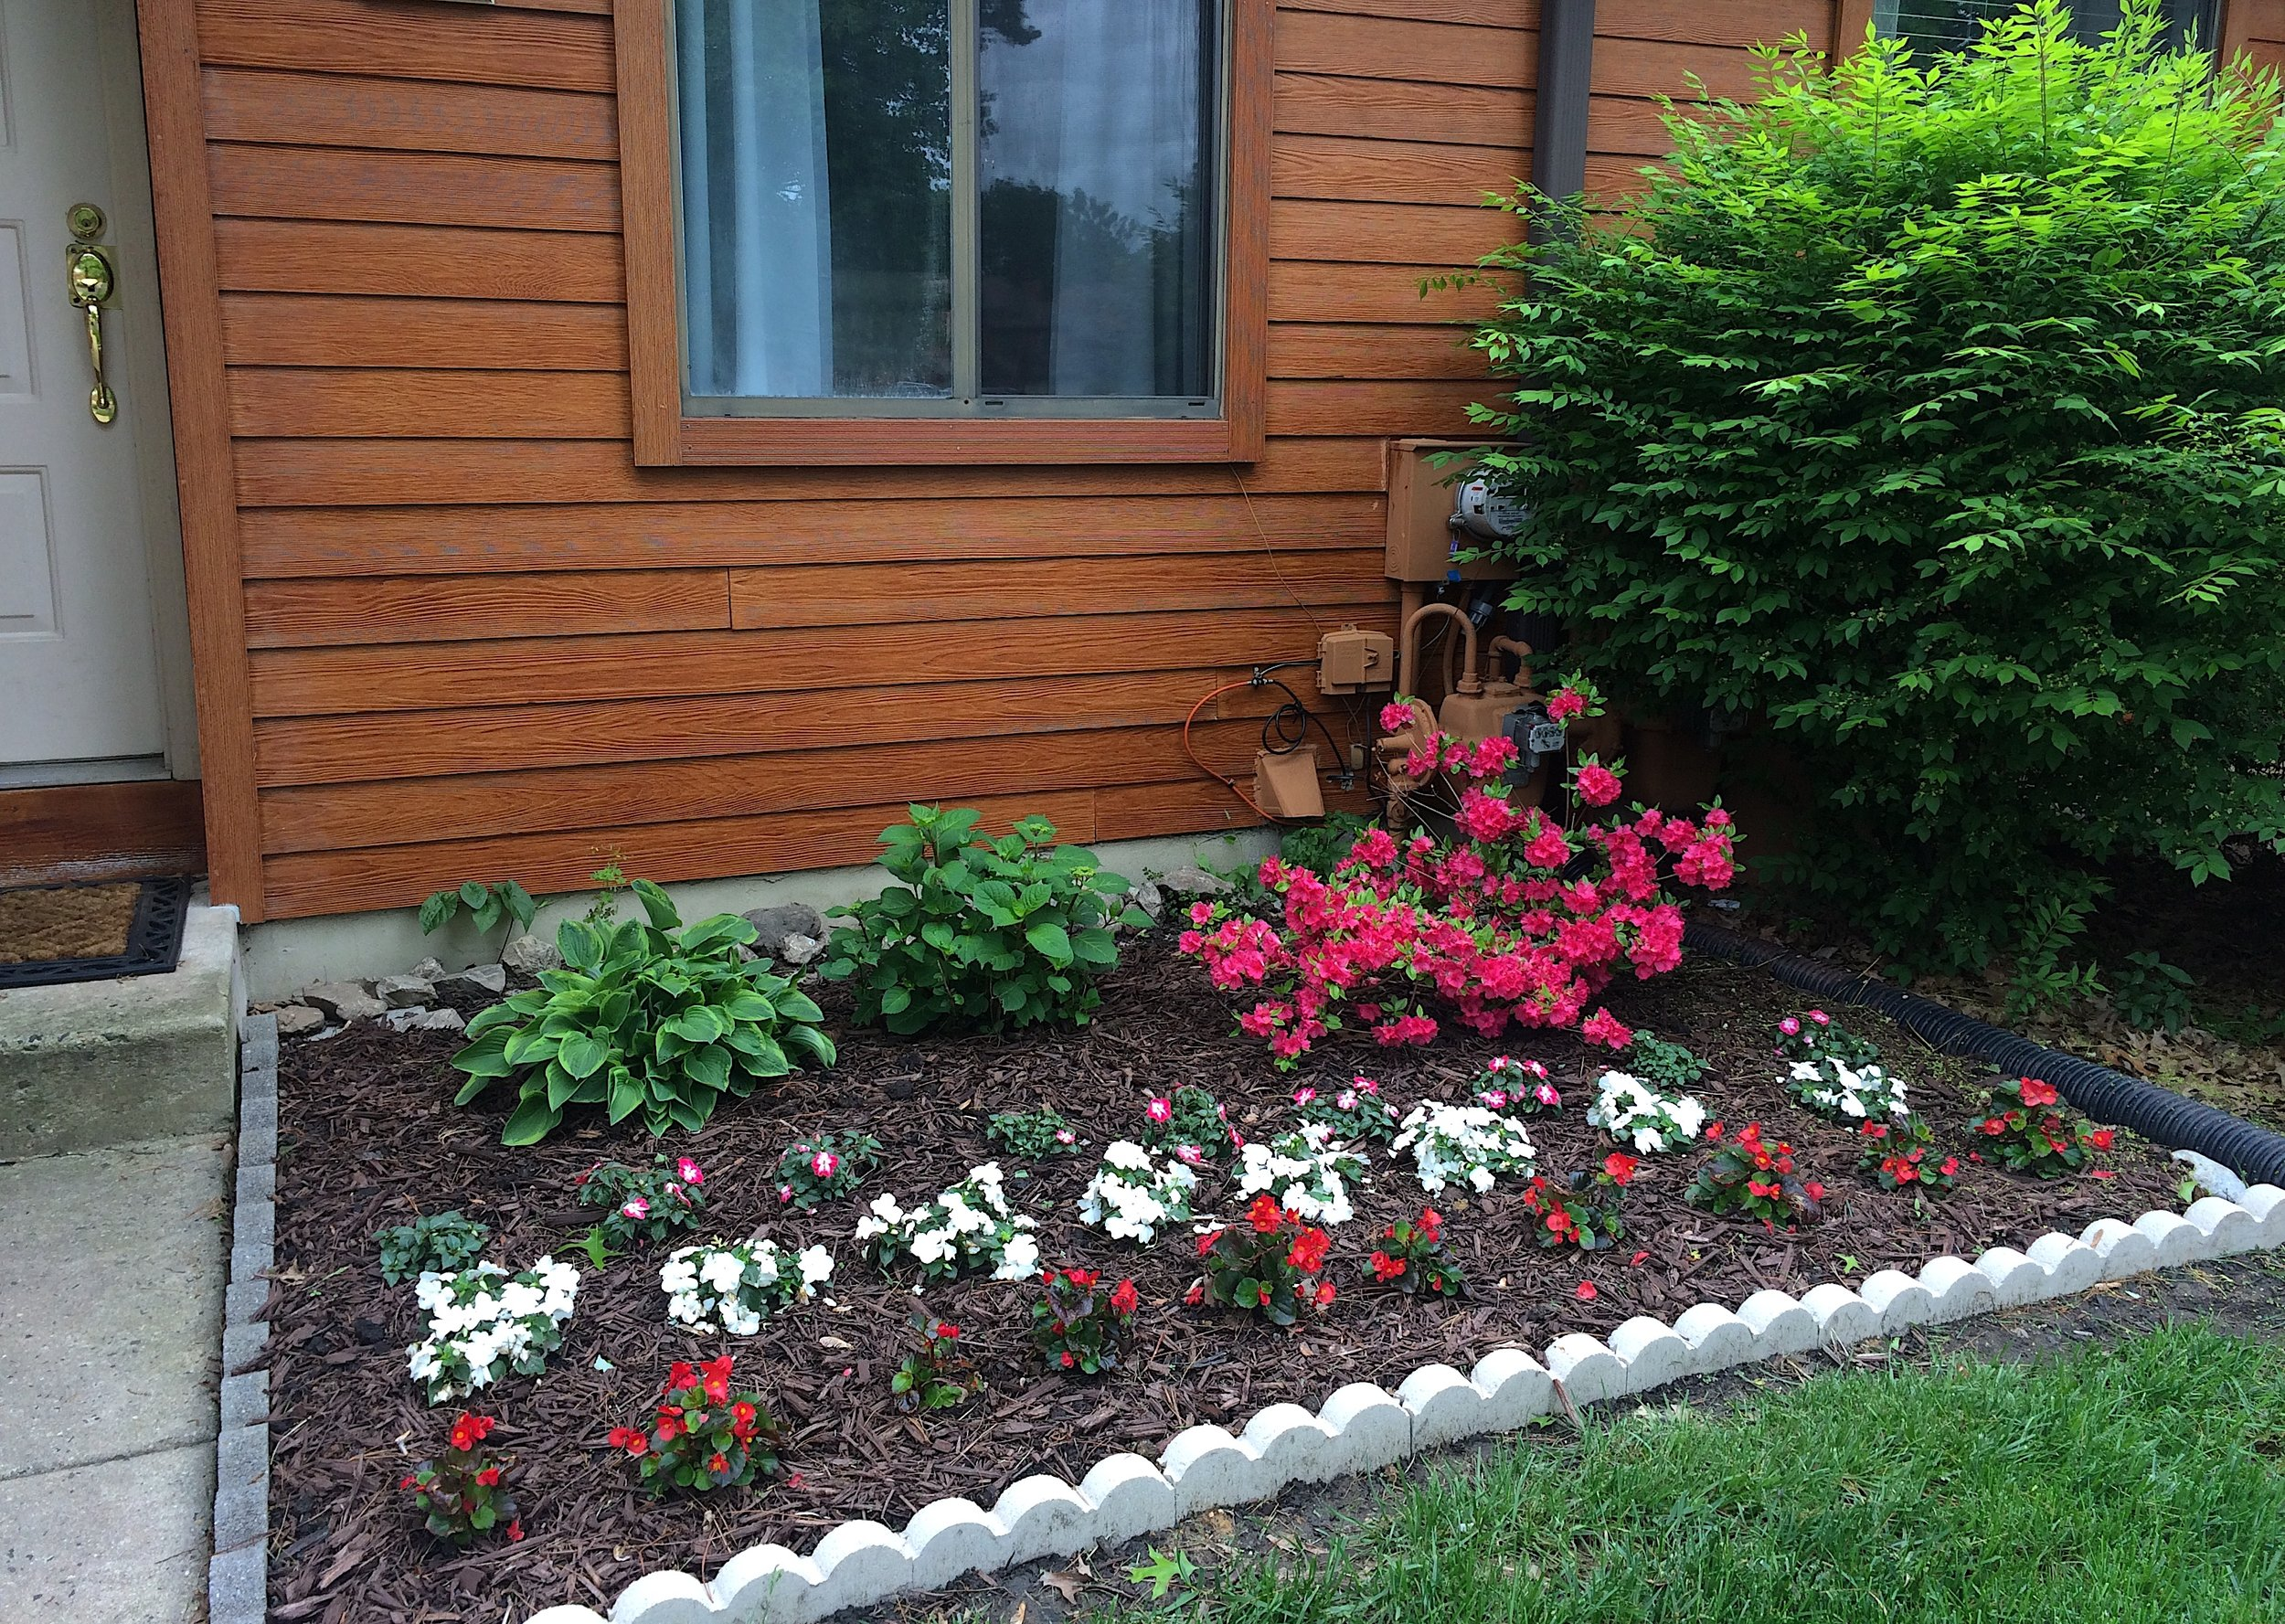 Our front yard last May. Part of our home story is that we are working on becoming good gardeners!